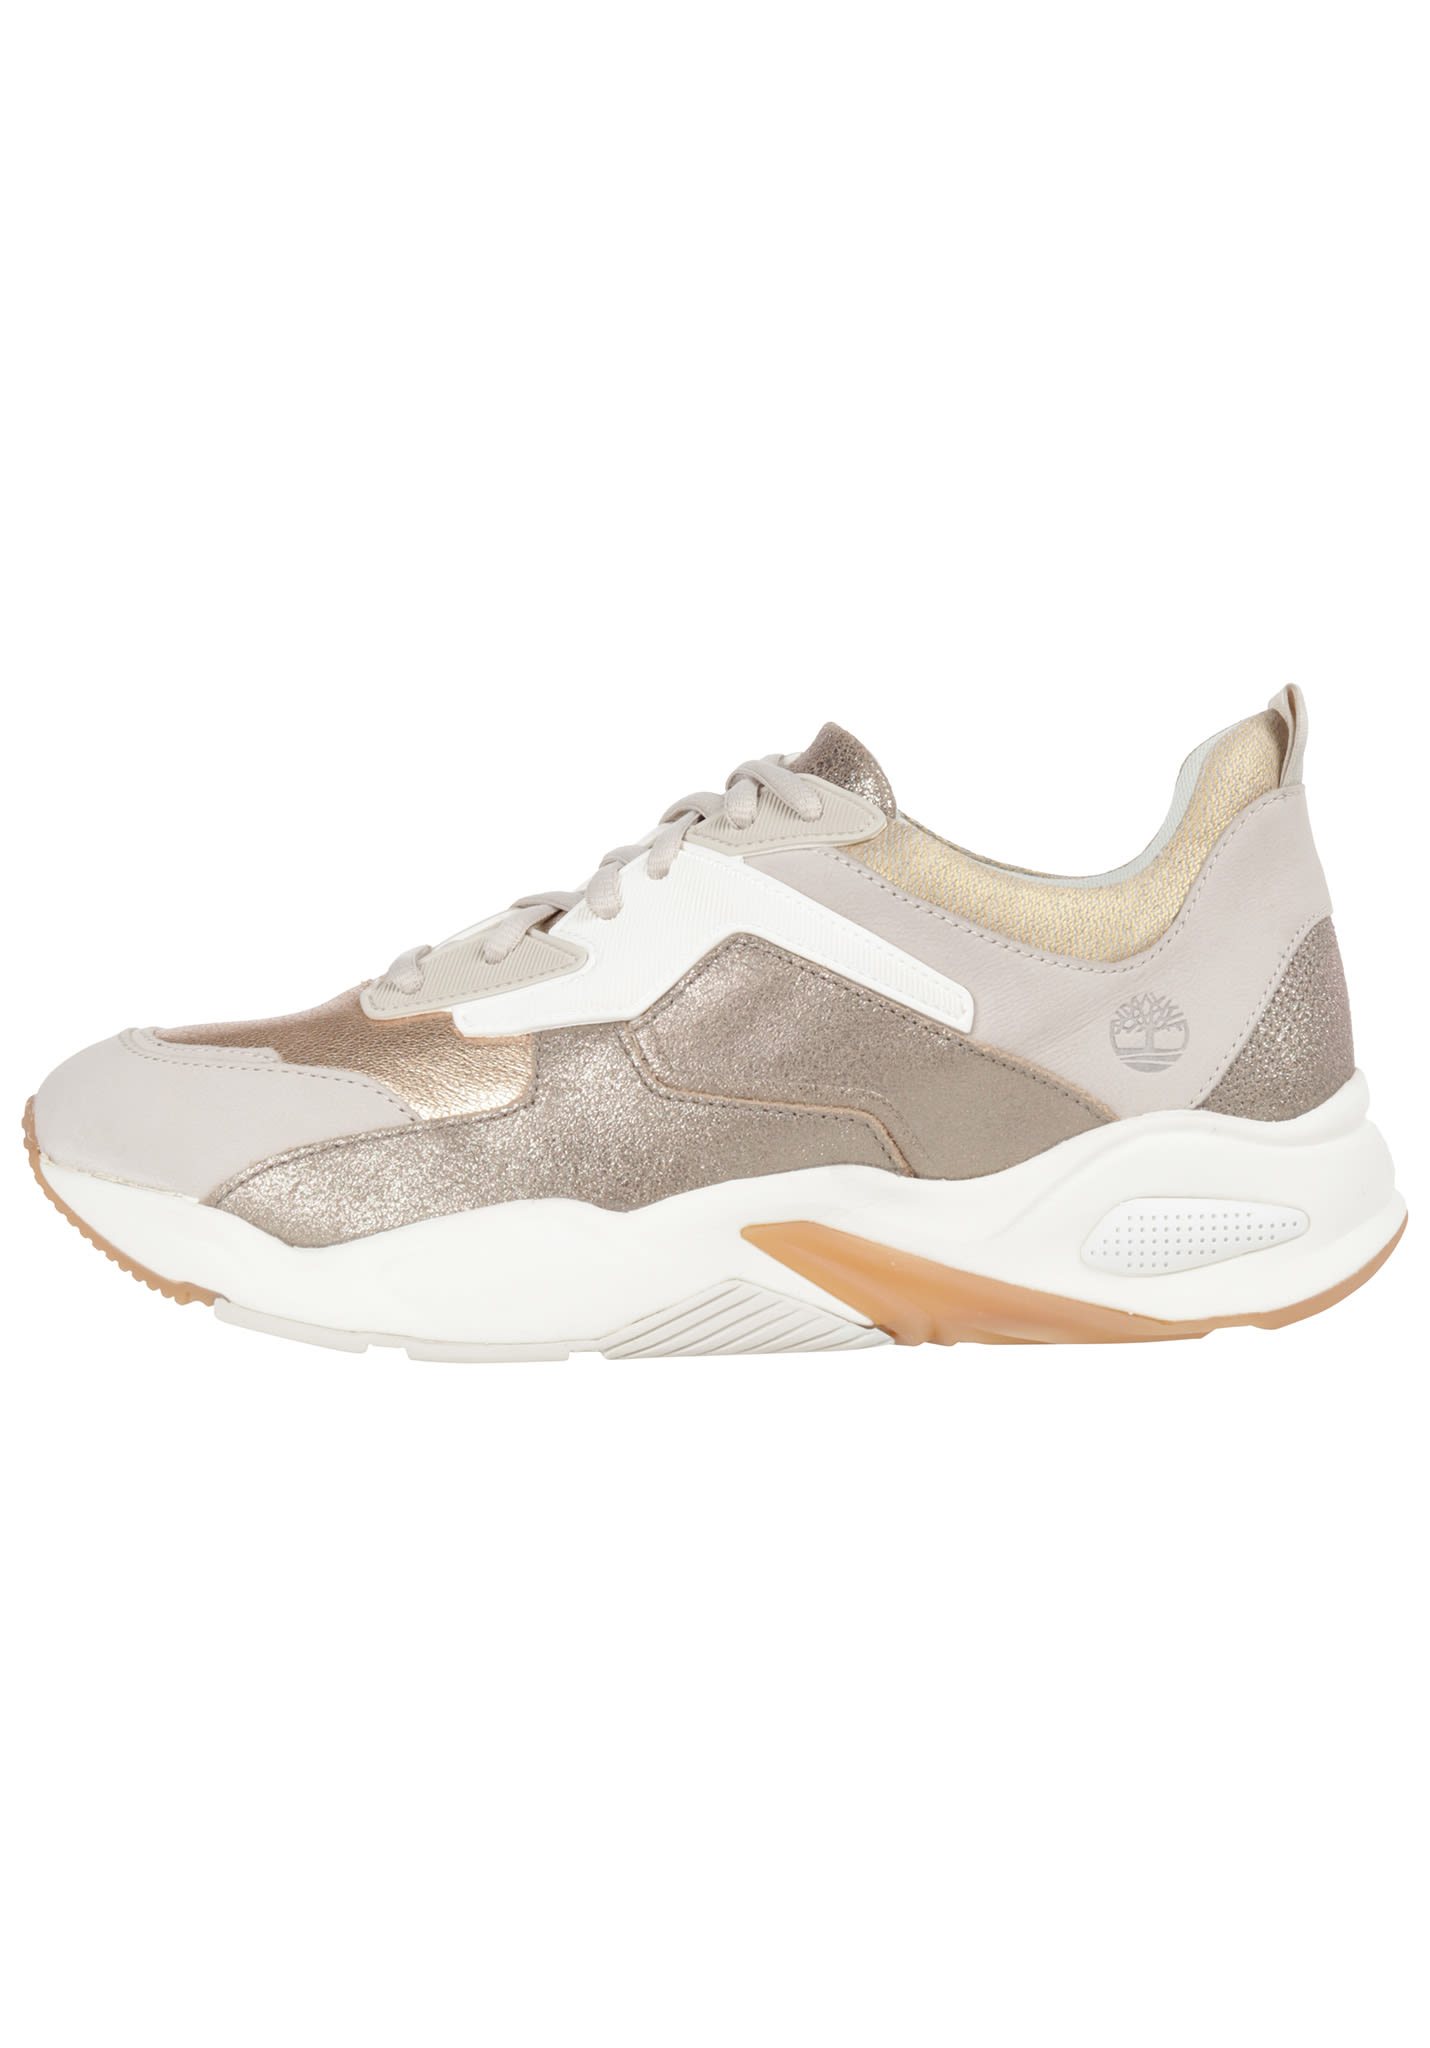 194a6fa0829 TIMBERLAND Delphiville Lthr - Sneakers voor Dames - Goud - Planet Sports